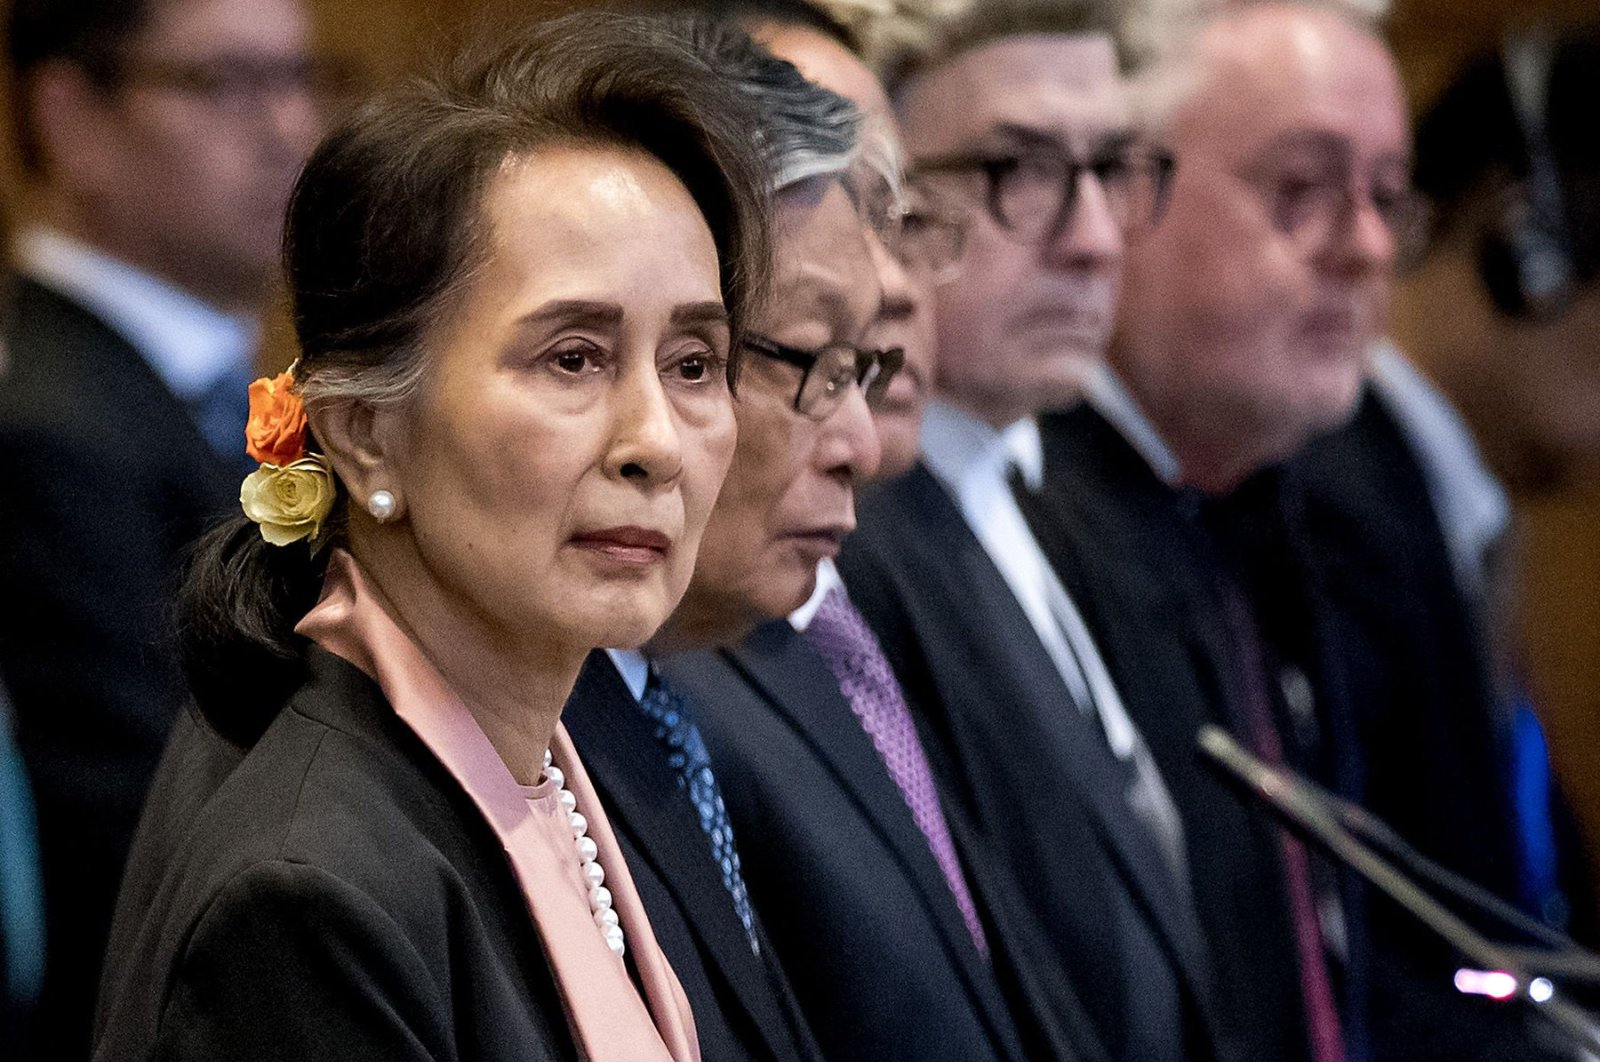 Myanmar's State Counselor Aung San Suu Kyi (L) stands before U.N.'s International Court of Justice at the start of a three-day hearing on the Rohingya genocide case at the Peace Palace, The Hague, the Netherlands, Dec. 10, 2019. (AFP Photo)